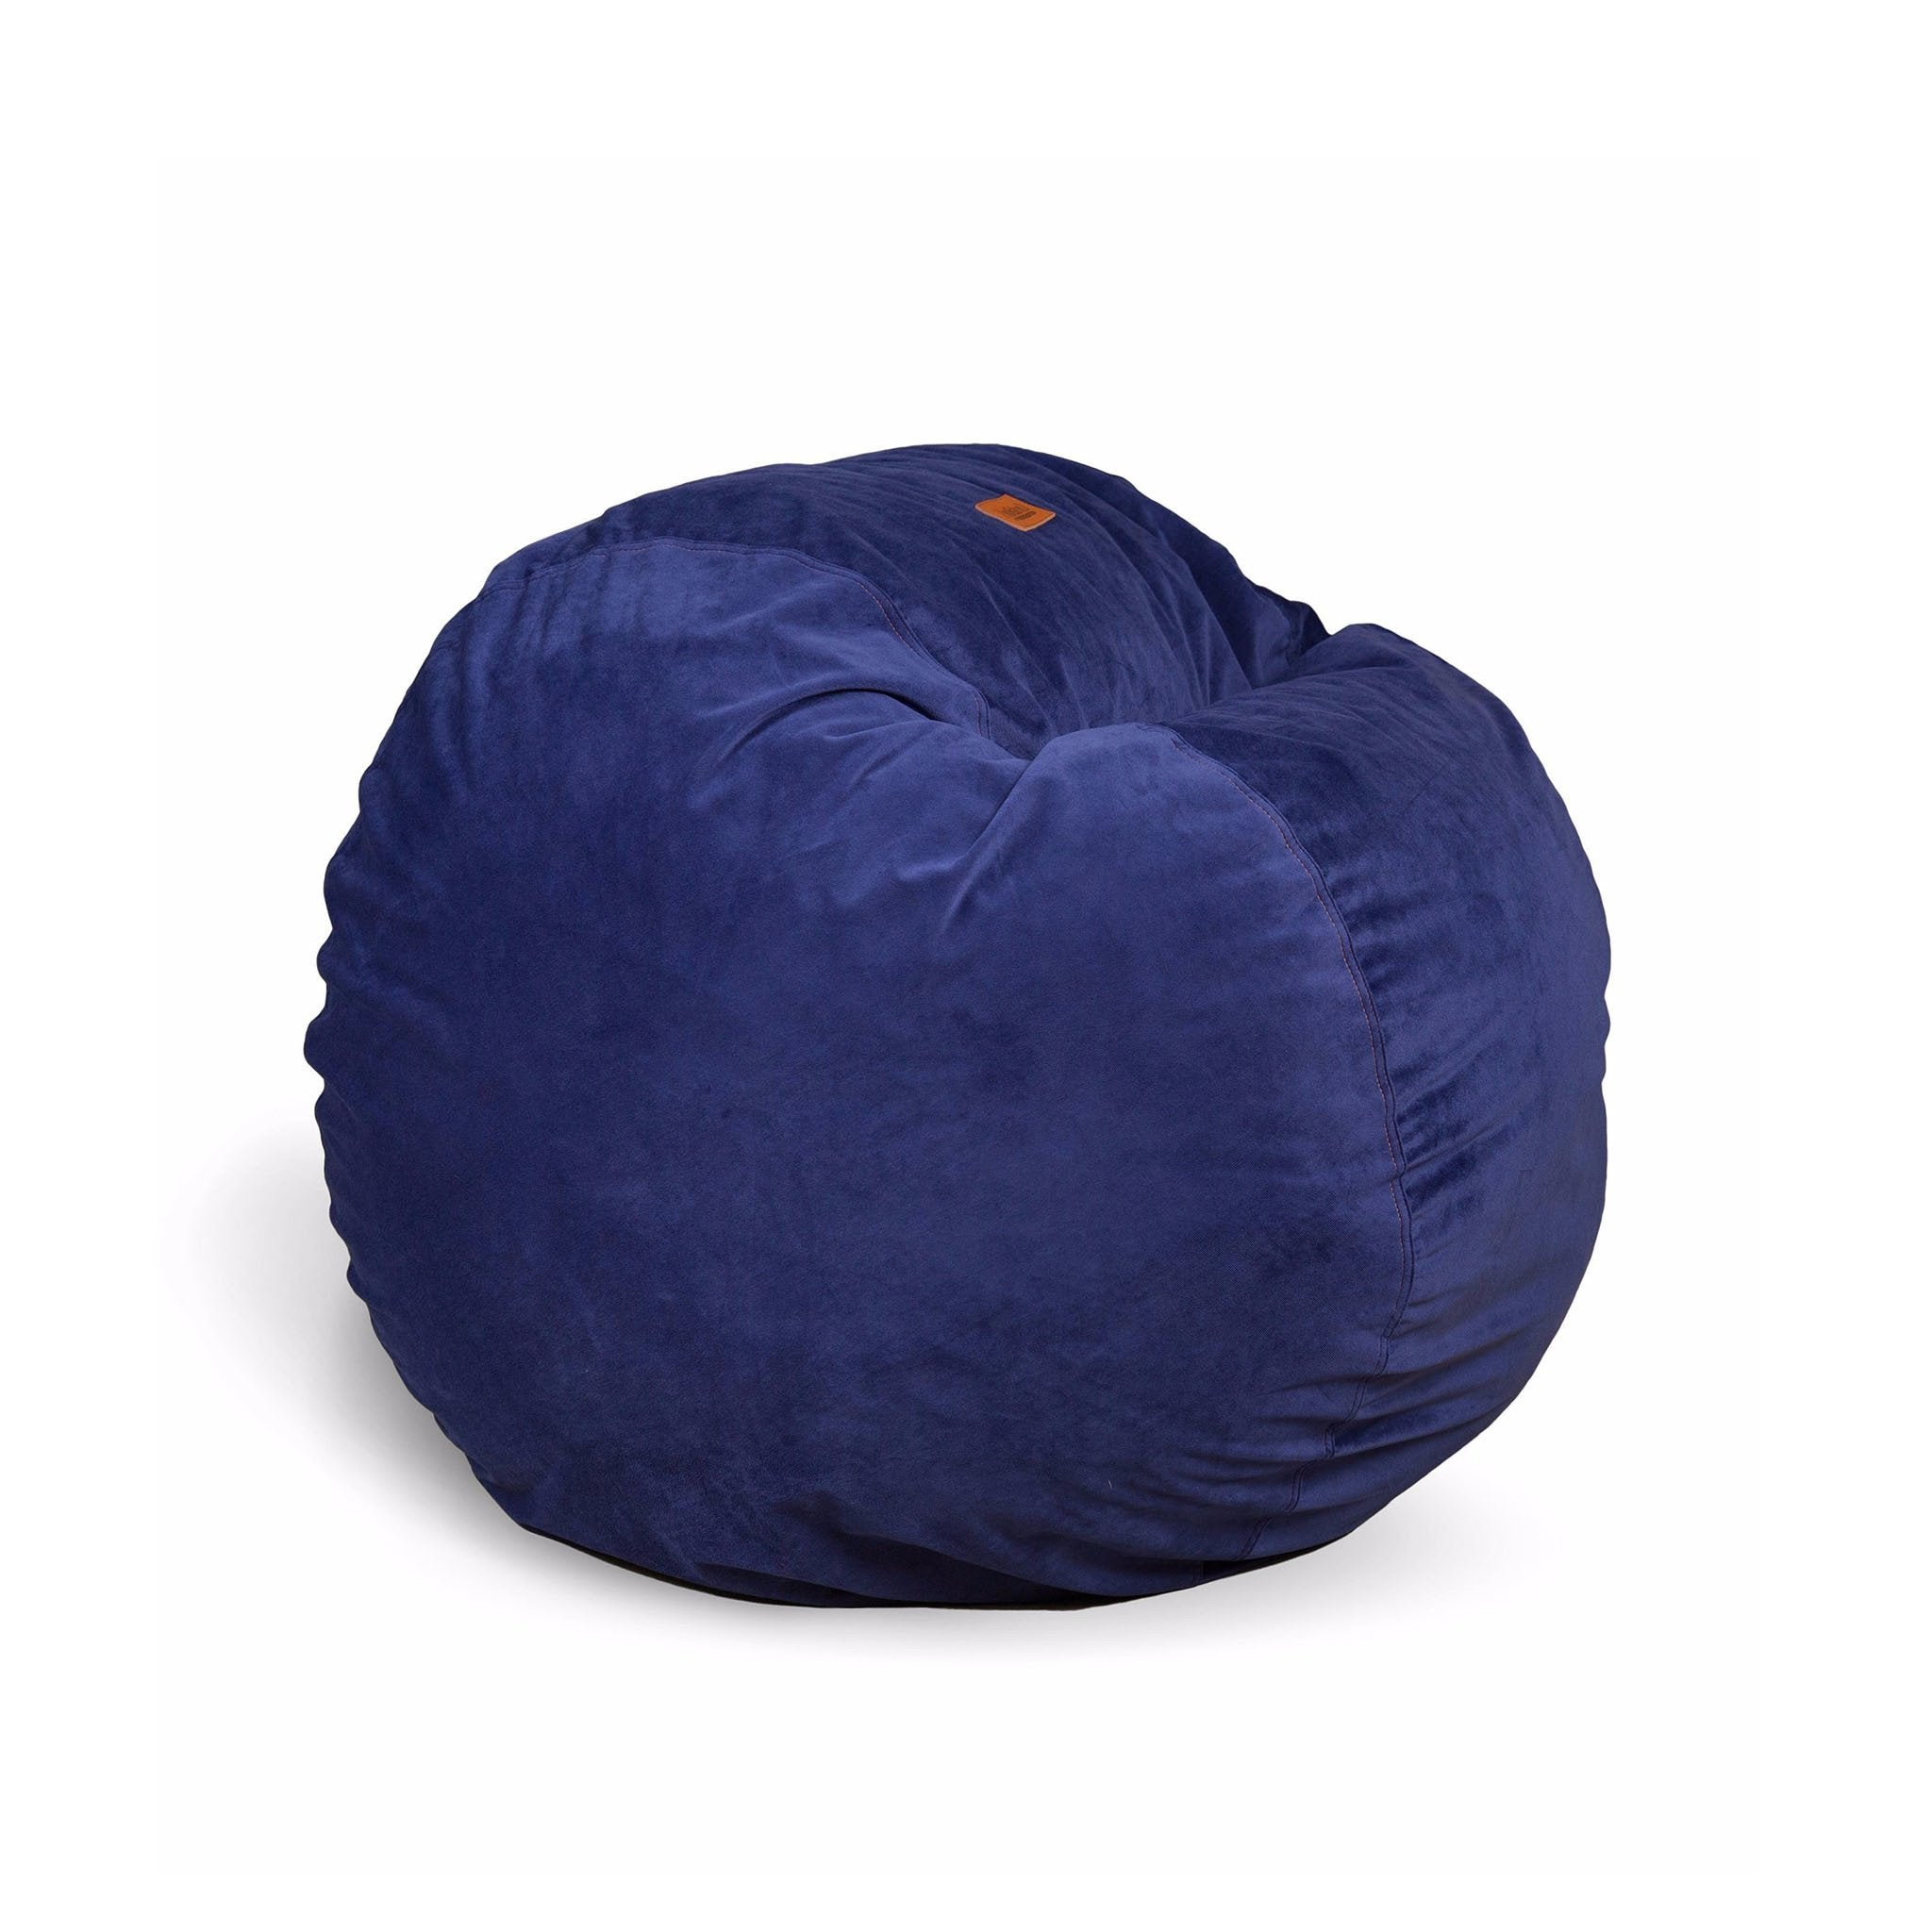 Remarkable Cordaroys Convertible Beanbags New Youth Micro Fur Navy Squirreltailoven Fun Painted Chair Ideas Images Squirreltailovenorg